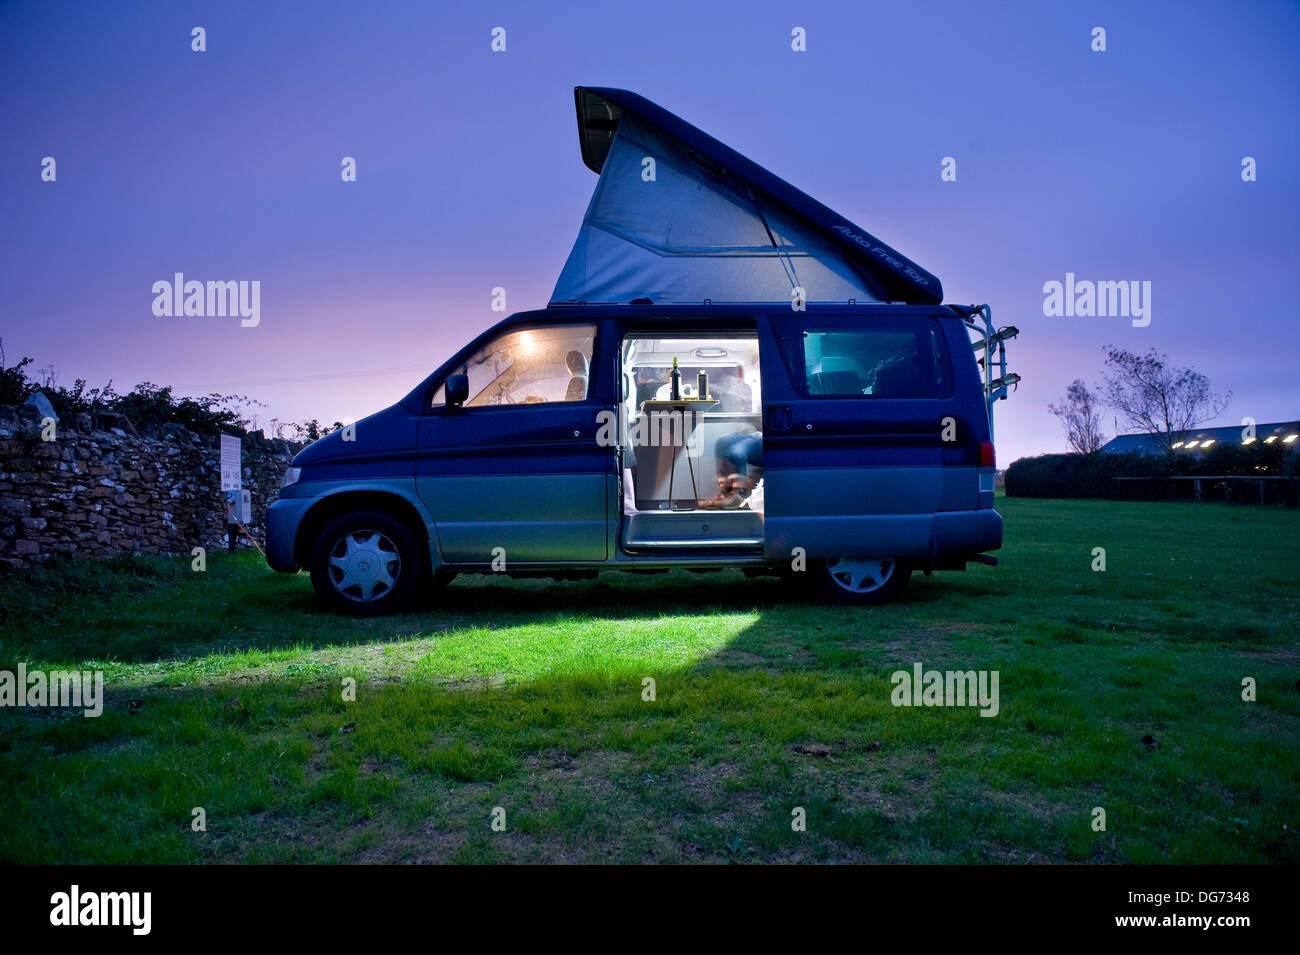 Campervan at twilight on a campsite near Weymouth, Dorset, UK - Stock Image